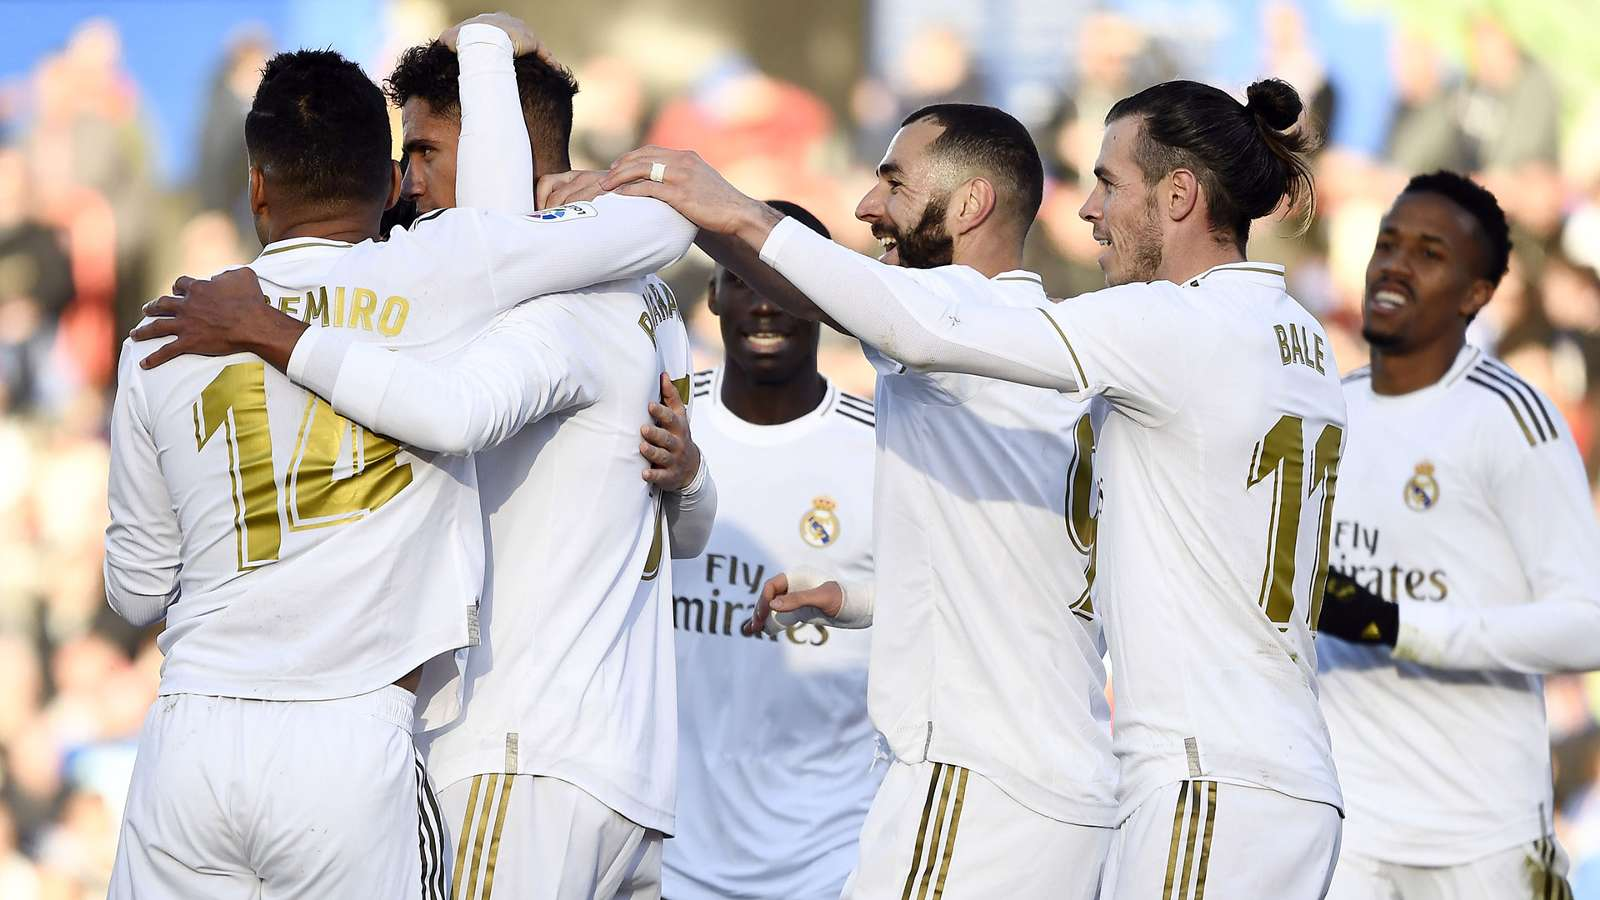 Real Madrid start 2020 with economic victory over Getafe